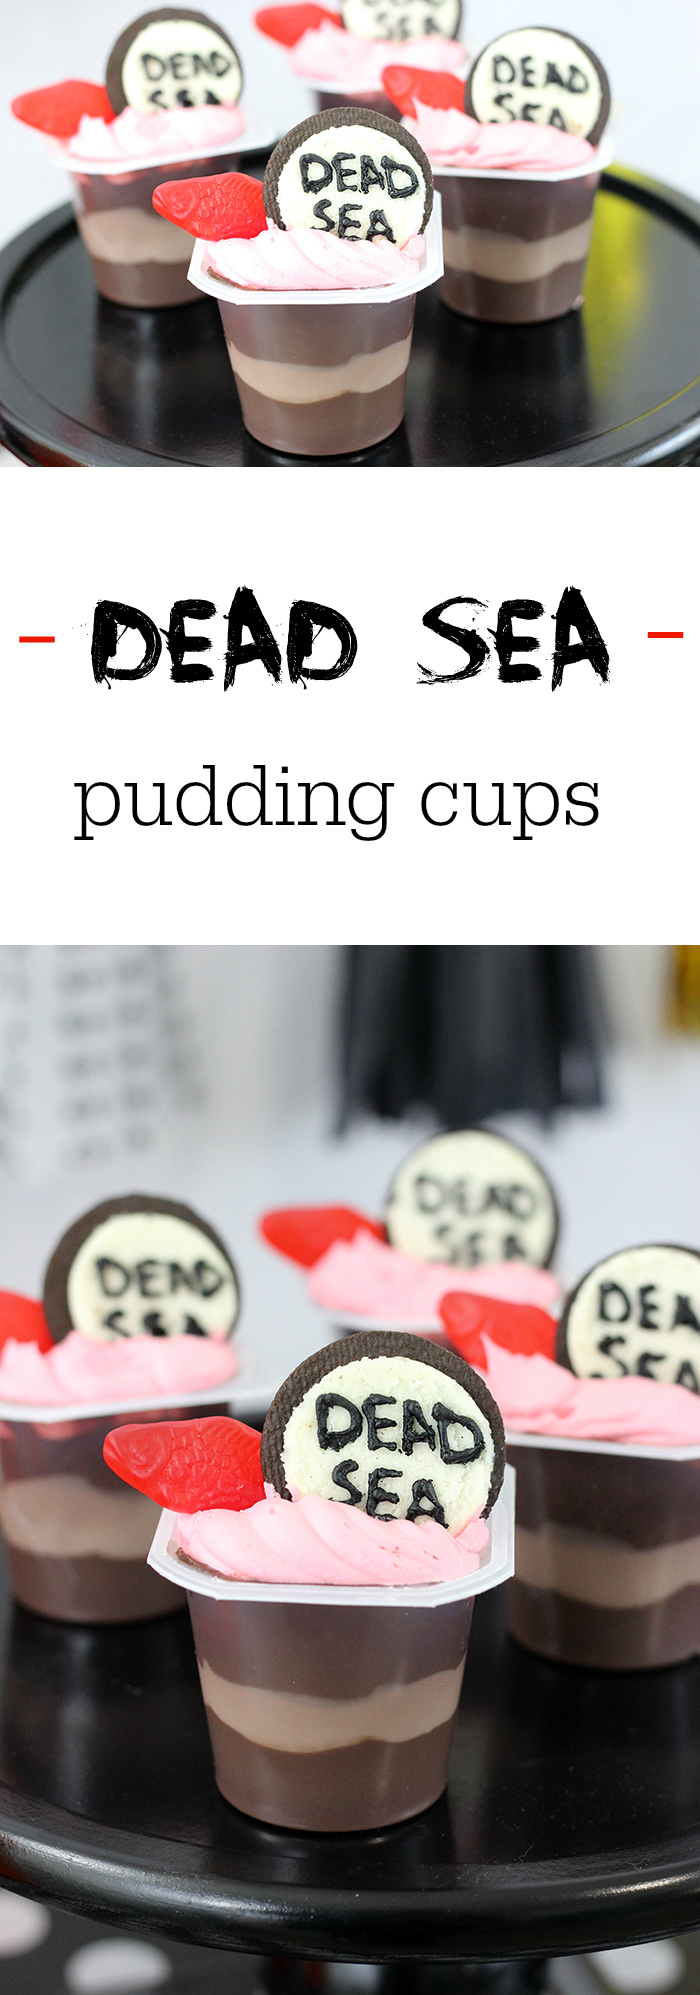 Creepy Halloween Party Treats. From haunted pudding cups, to blood spattered OREO cookies and more. Make Dead Sea Pudding Cups with OREO, Swedish Fish and Snack Pack Pudding Cups.